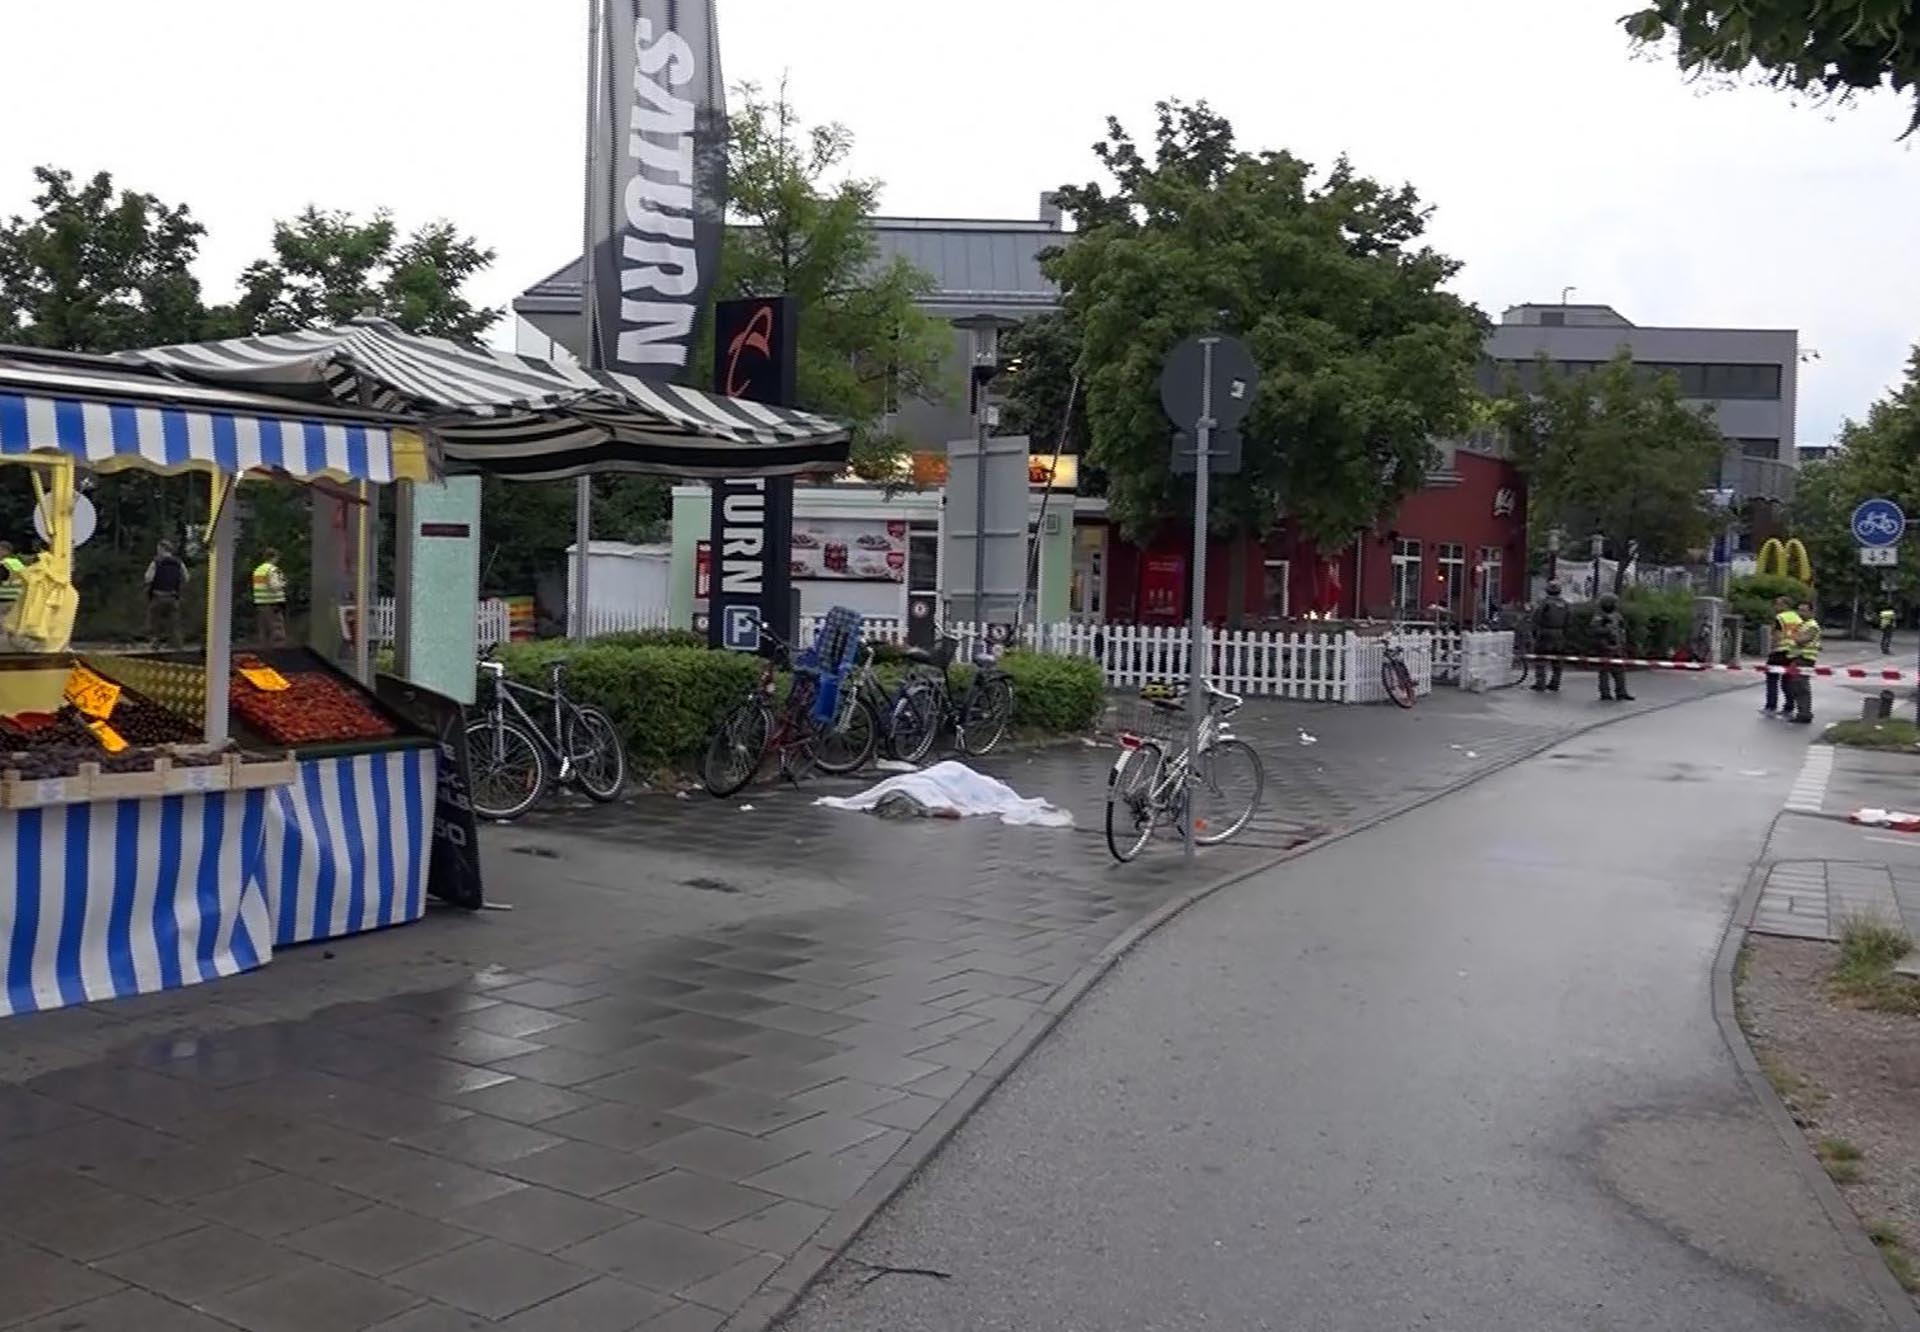 GERMANY OUT In this grab taken from video, a body covered with a sheet outside the mall, in Munich, Germany, Friday,  July 22, 2016. A manhunt was underway Friday for a shooter or shooters who opened fire at a shopping mall in Munich, killing and wounding several people, a Munich police spokeswoman said. The city transit system shut down and police asked people to avoid public places. (NONSTOP NEWS via AP)